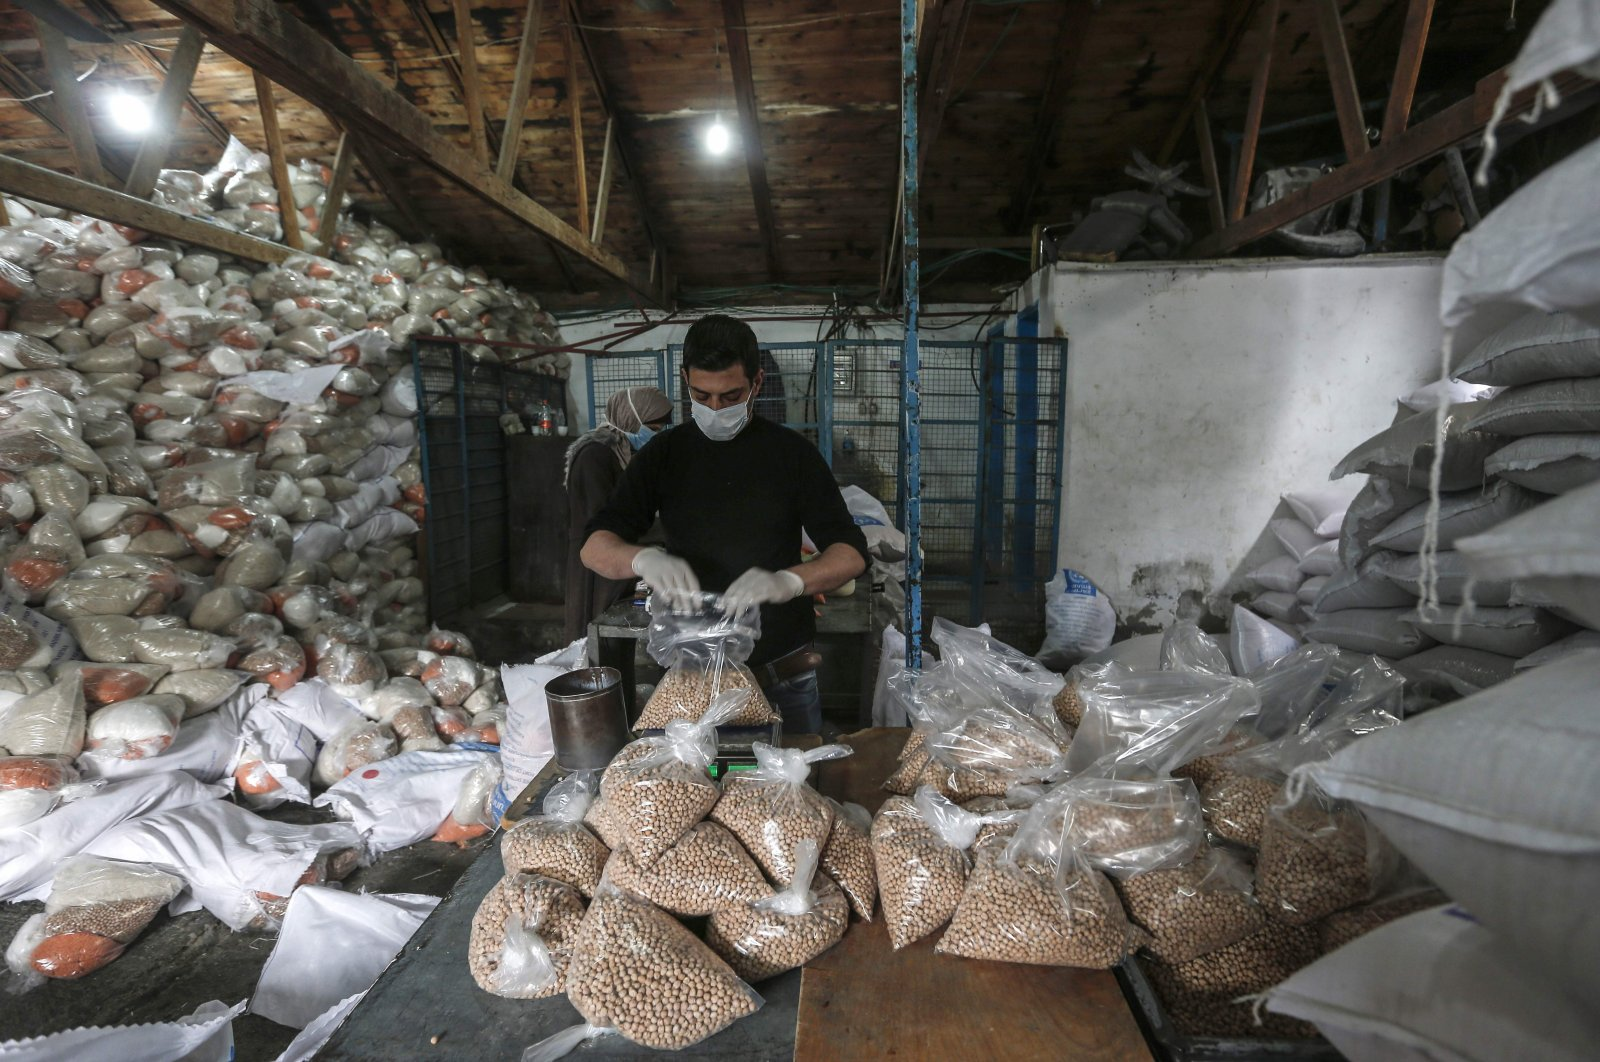 Palestinian employees at the United Nations Relief and Works Agency for Palestinian Refugees (UNRWA) wearing protective masks and gloves prepare food aid rations to be delivered to refugee family homes rather than distributed at a U.N. center, in Gaza City, Tuesday, March 31, 2020. (AFP Photo)